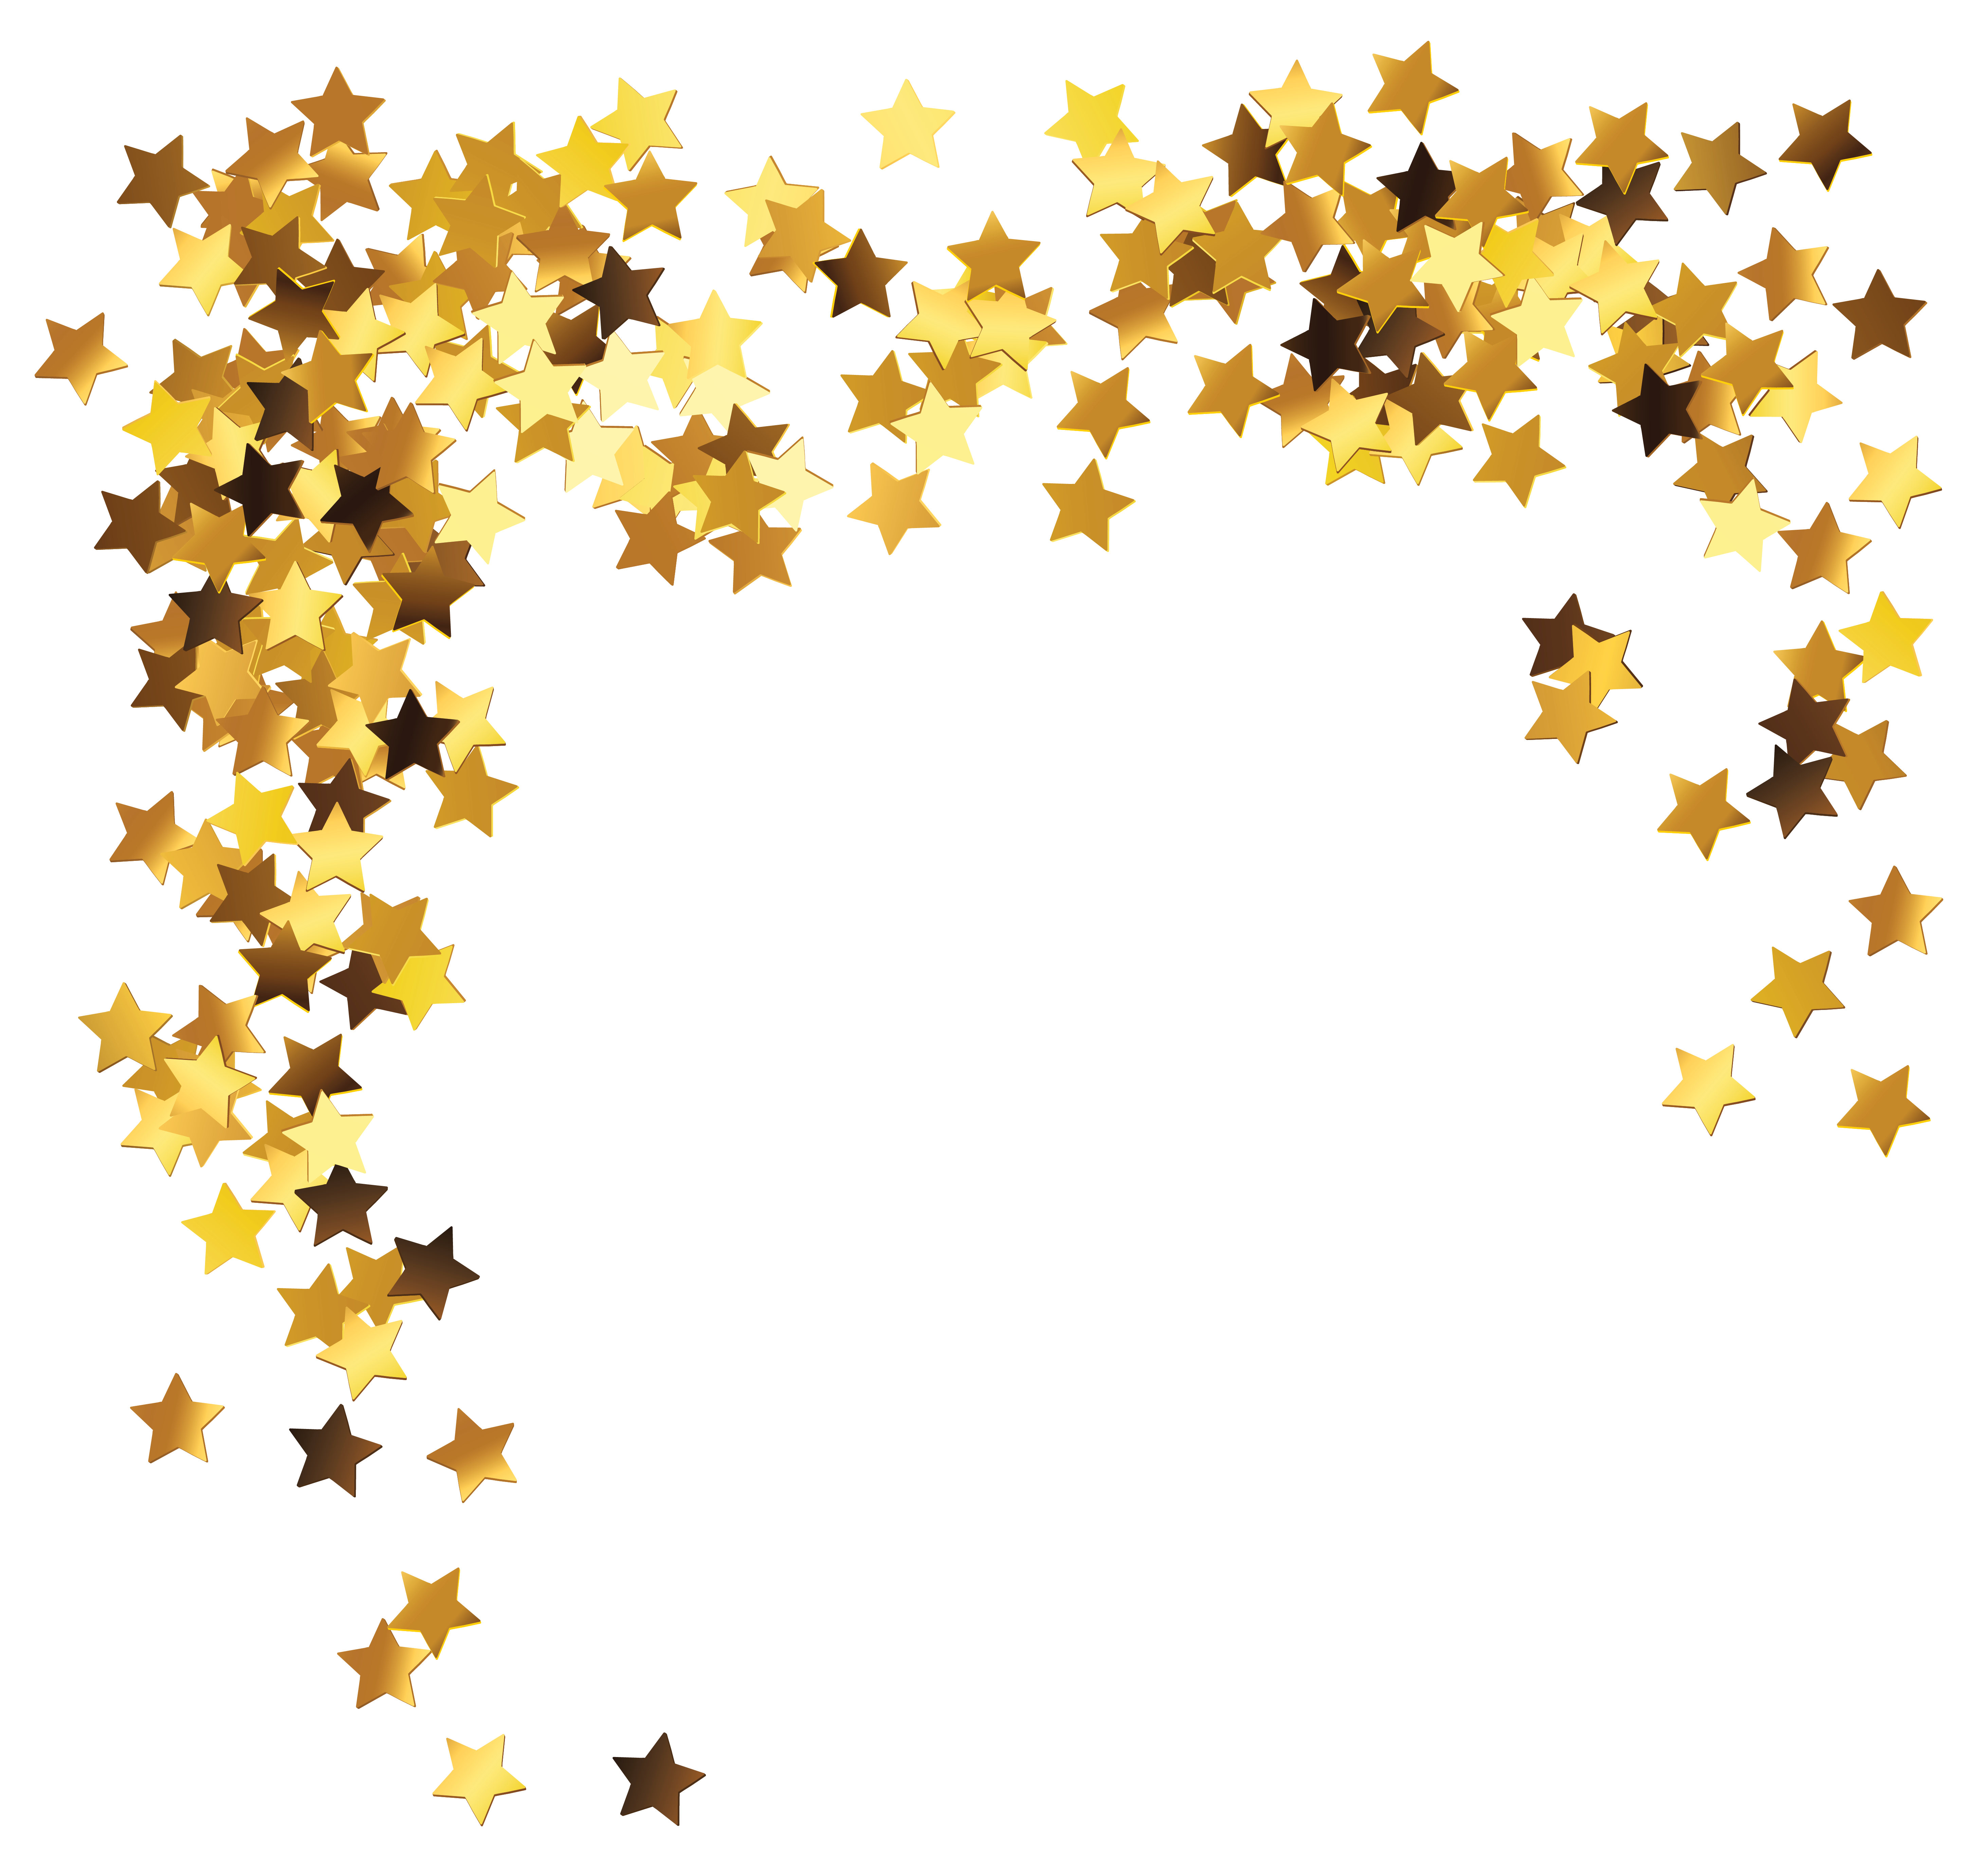 Gold stars decoration clipart picture